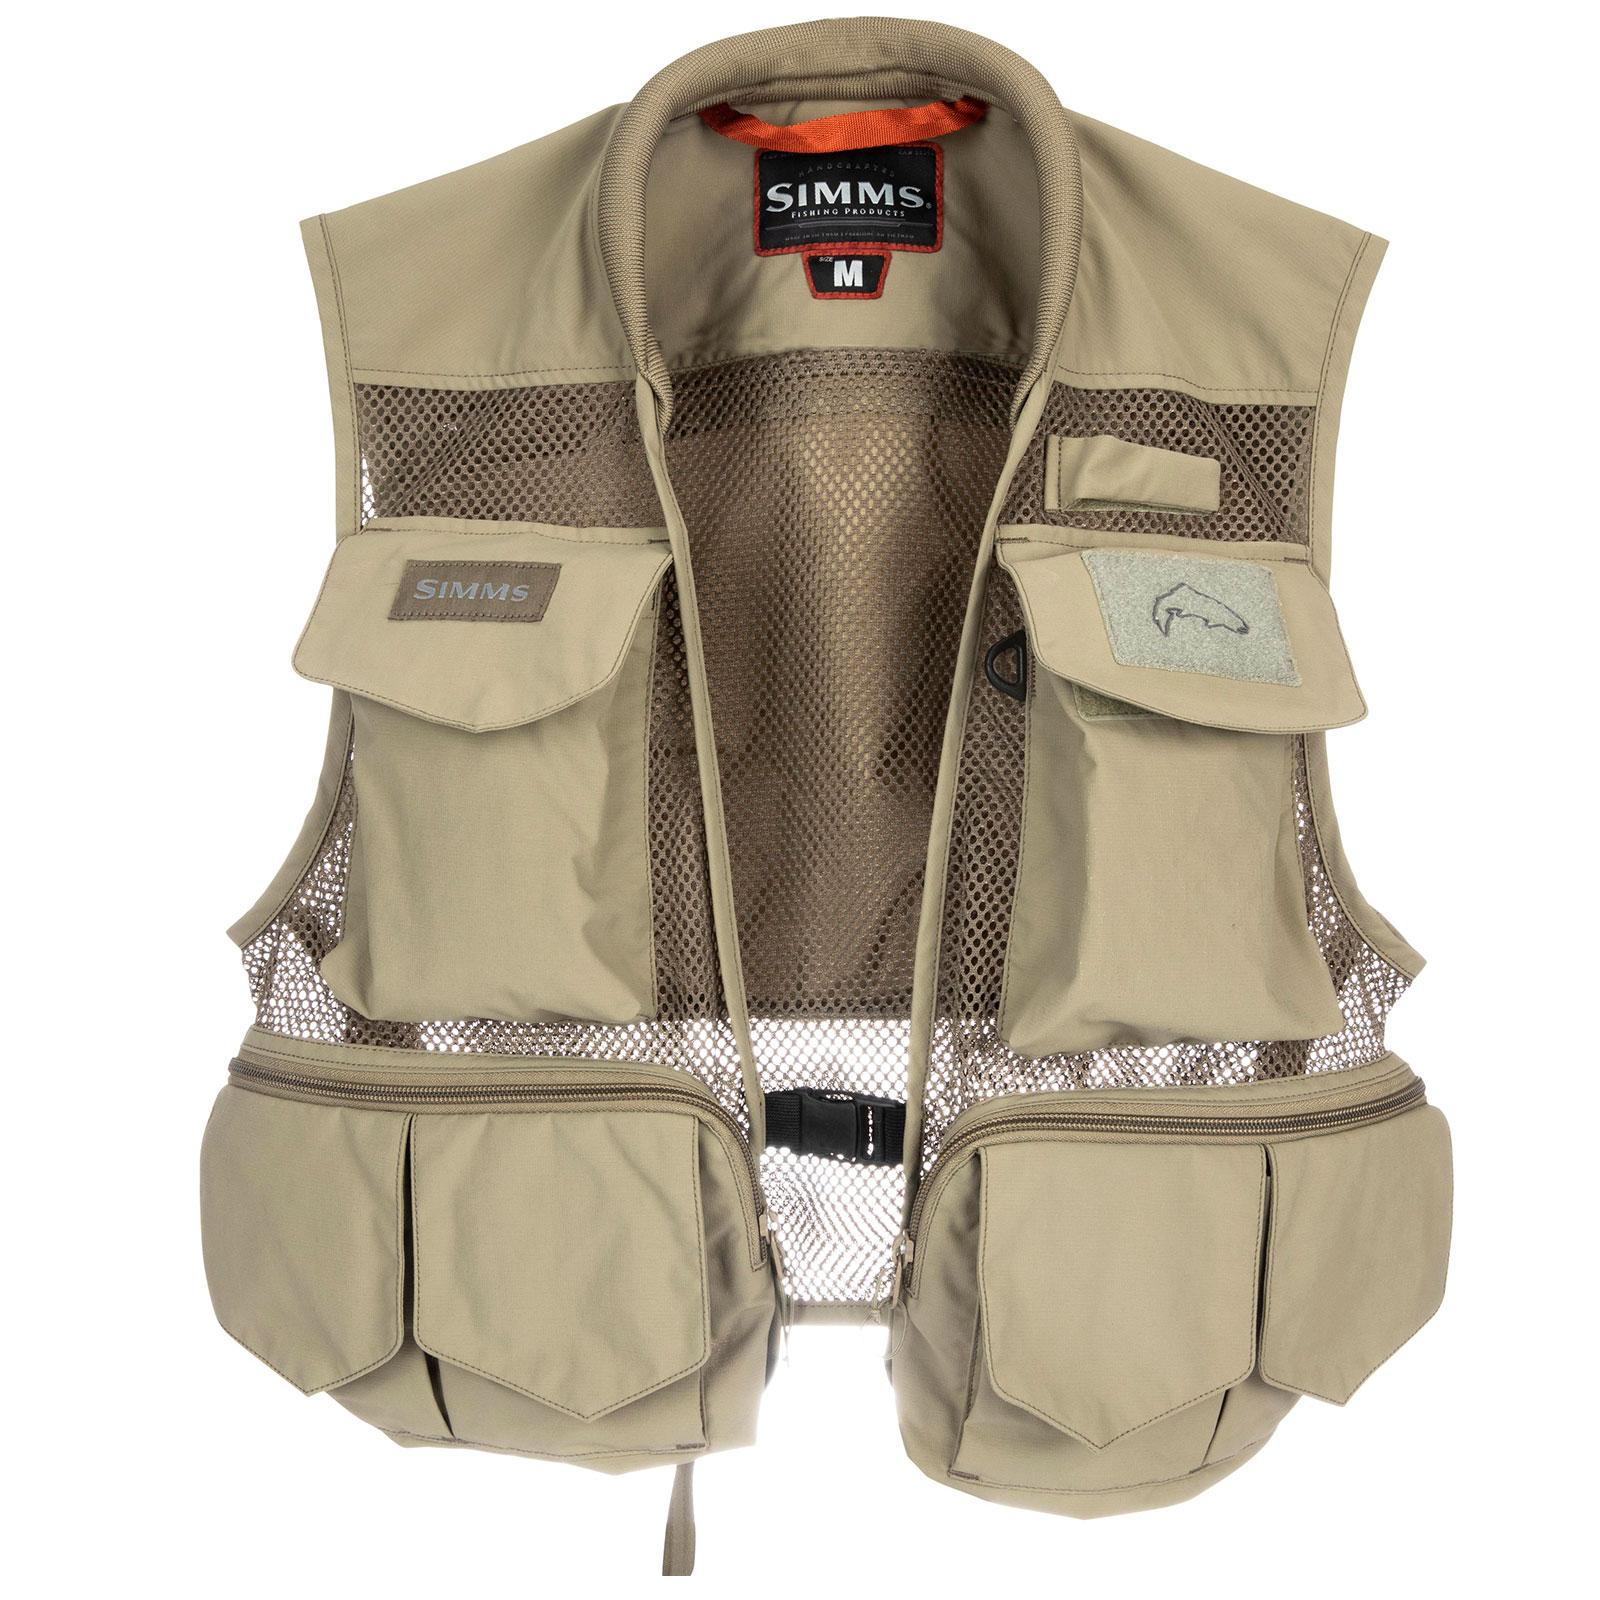 Simms Men's Tributary Fishing Vest